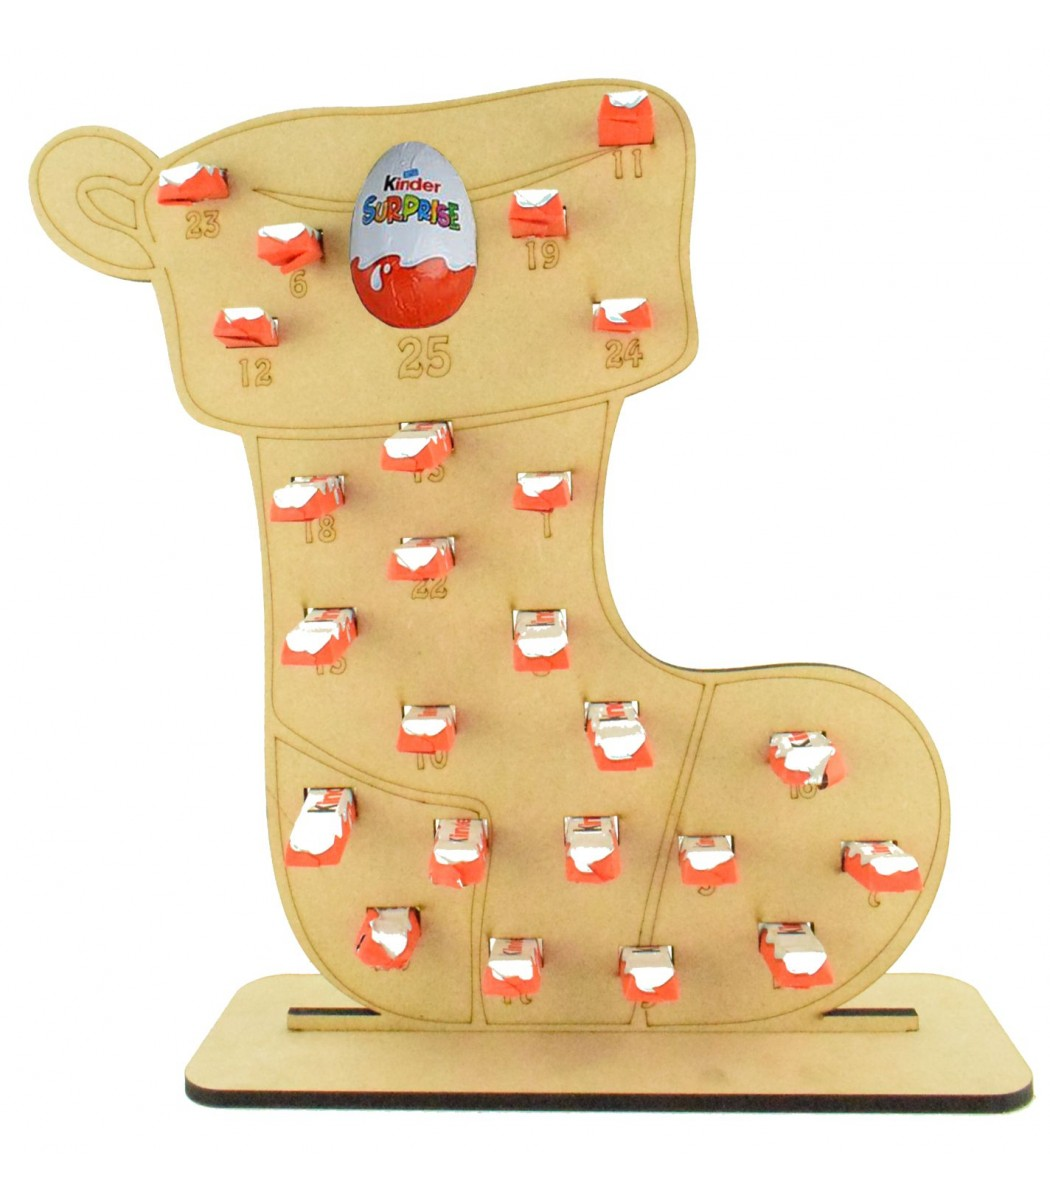 Kinder Egg Chair.6mm Kinder Chocolate Bars Kinder Egg Holder Advent Calendar Stocking